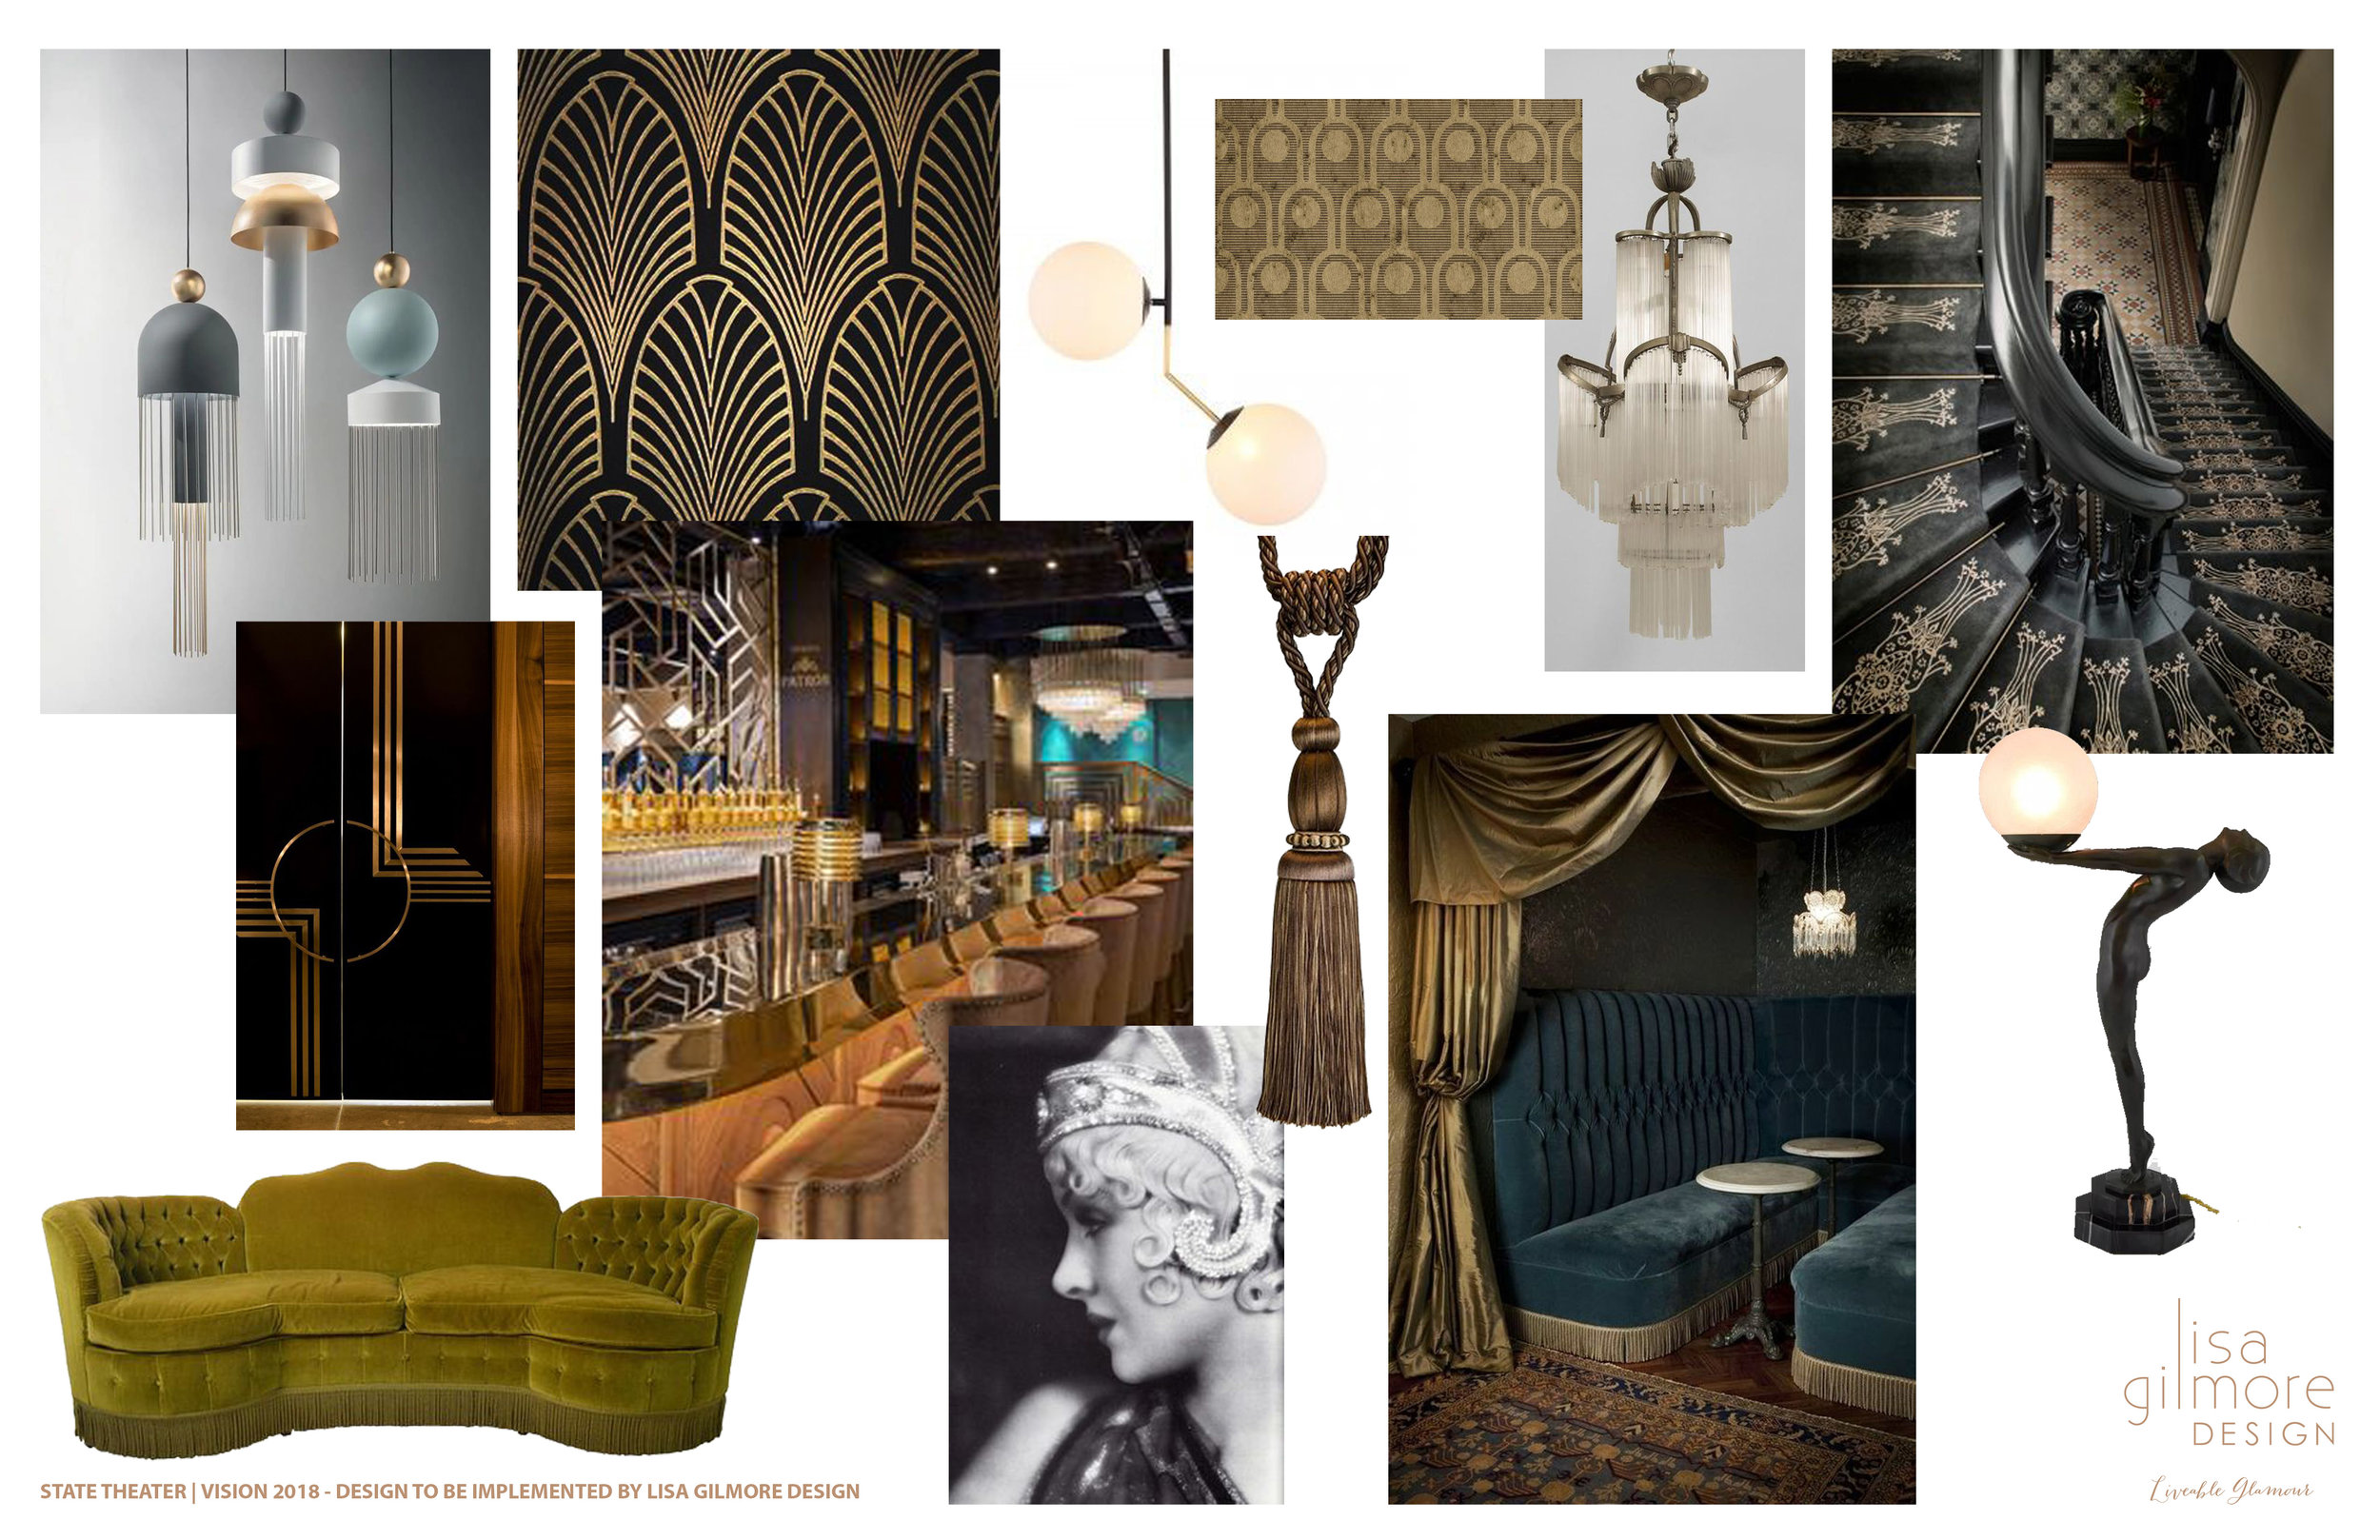 Bringing 1920's glamour back to the historic State Theater, in collaboration with Boyd Construction